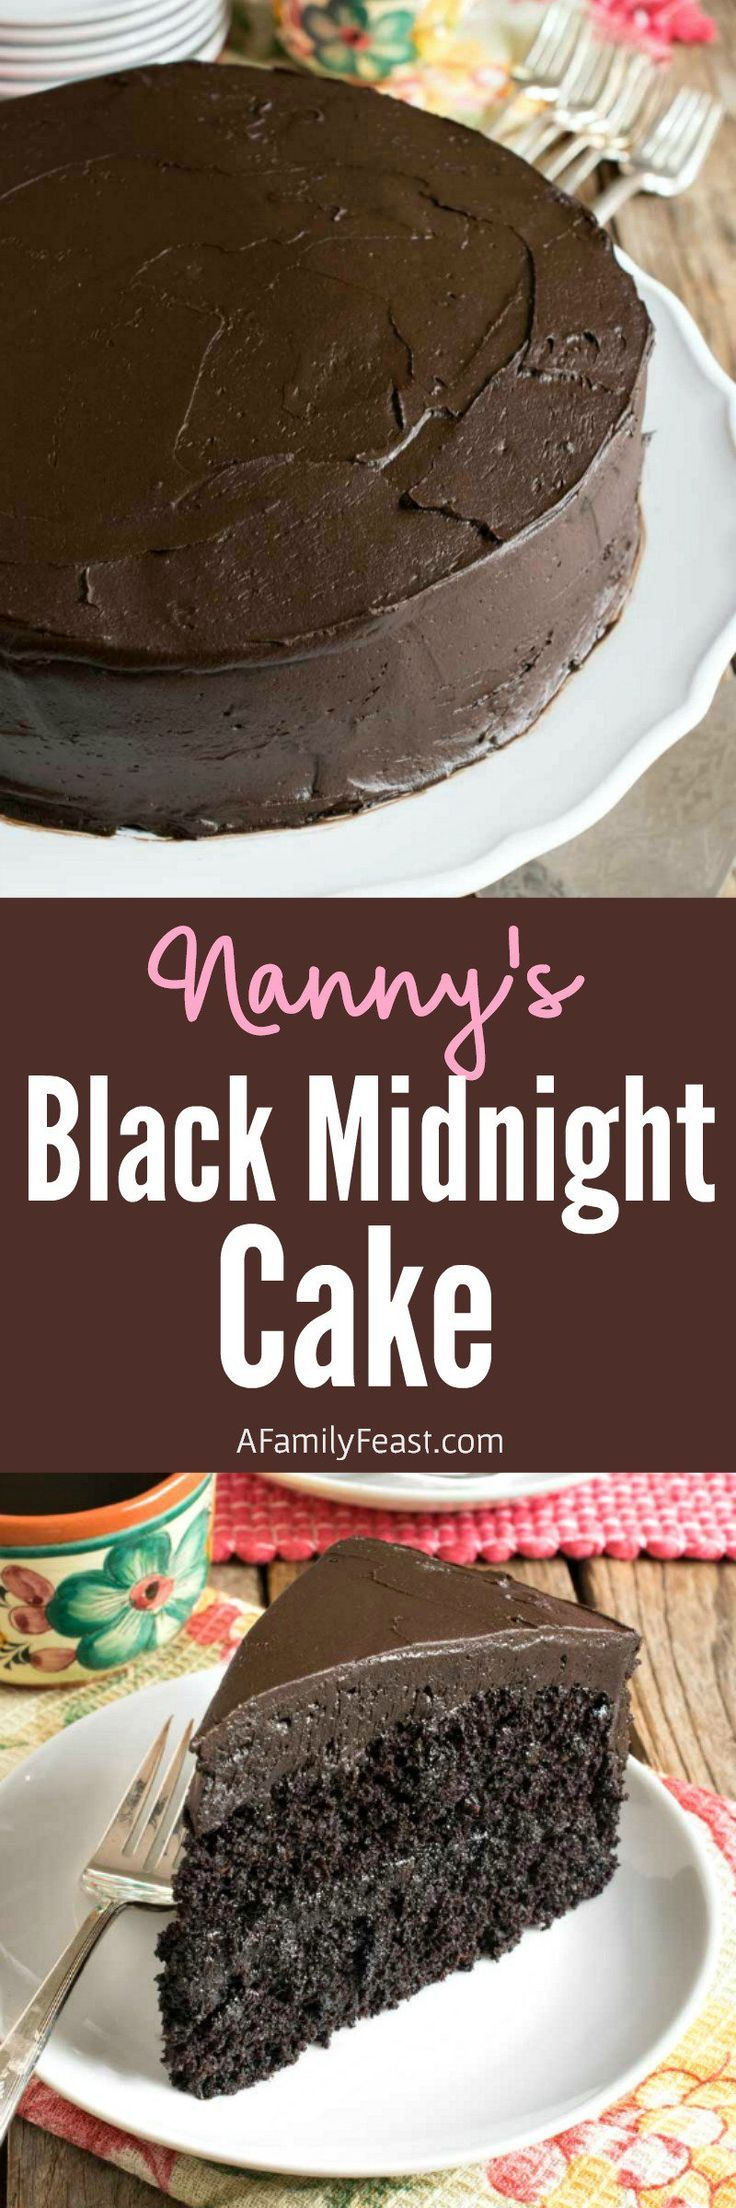 Nanny's Black Midnight Cake - A delicious black midnight chocolate cake - an old family recipe that has been passed down through generations!